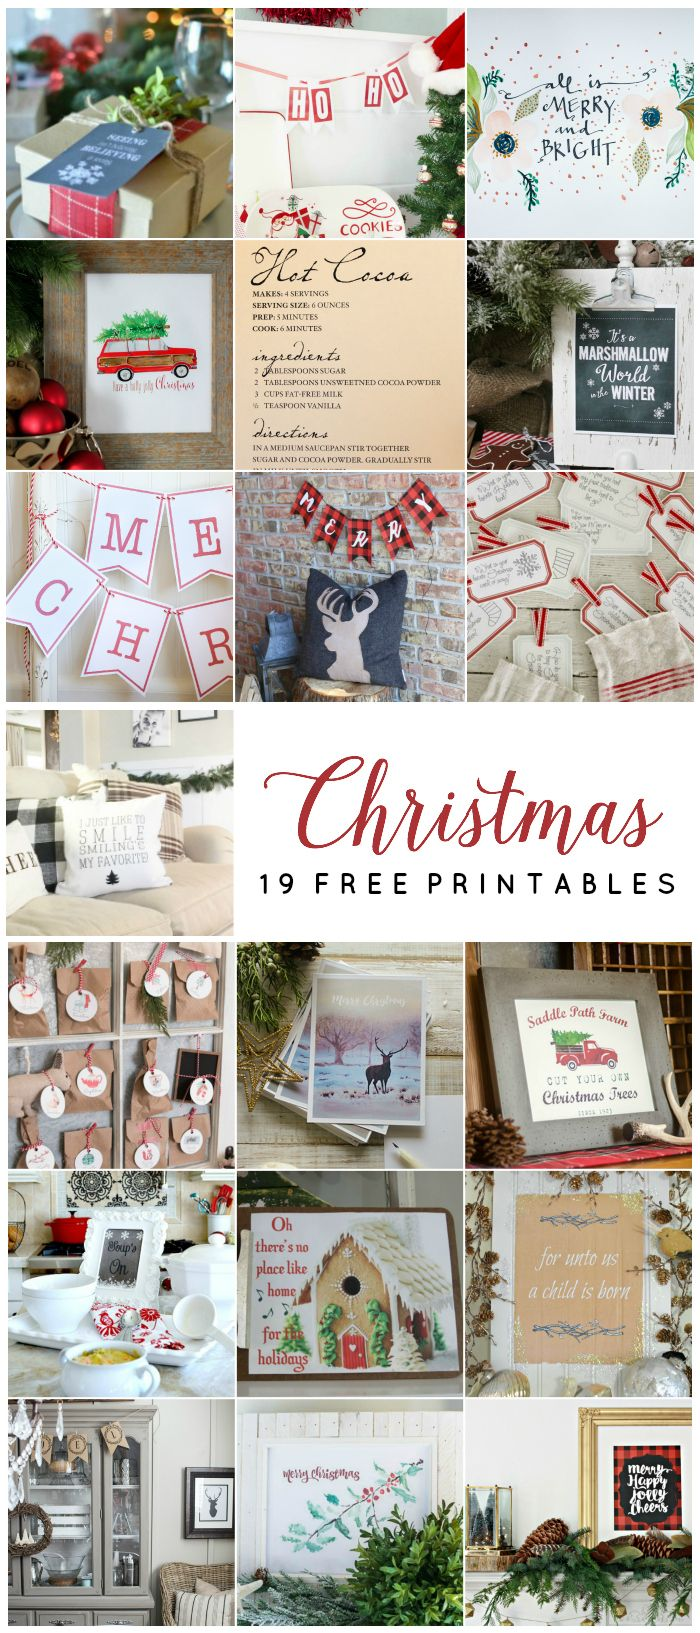 19 New & Fabulous Free Christmas Printables - perfect for decorating or gift giving eclecticallyvintage.com